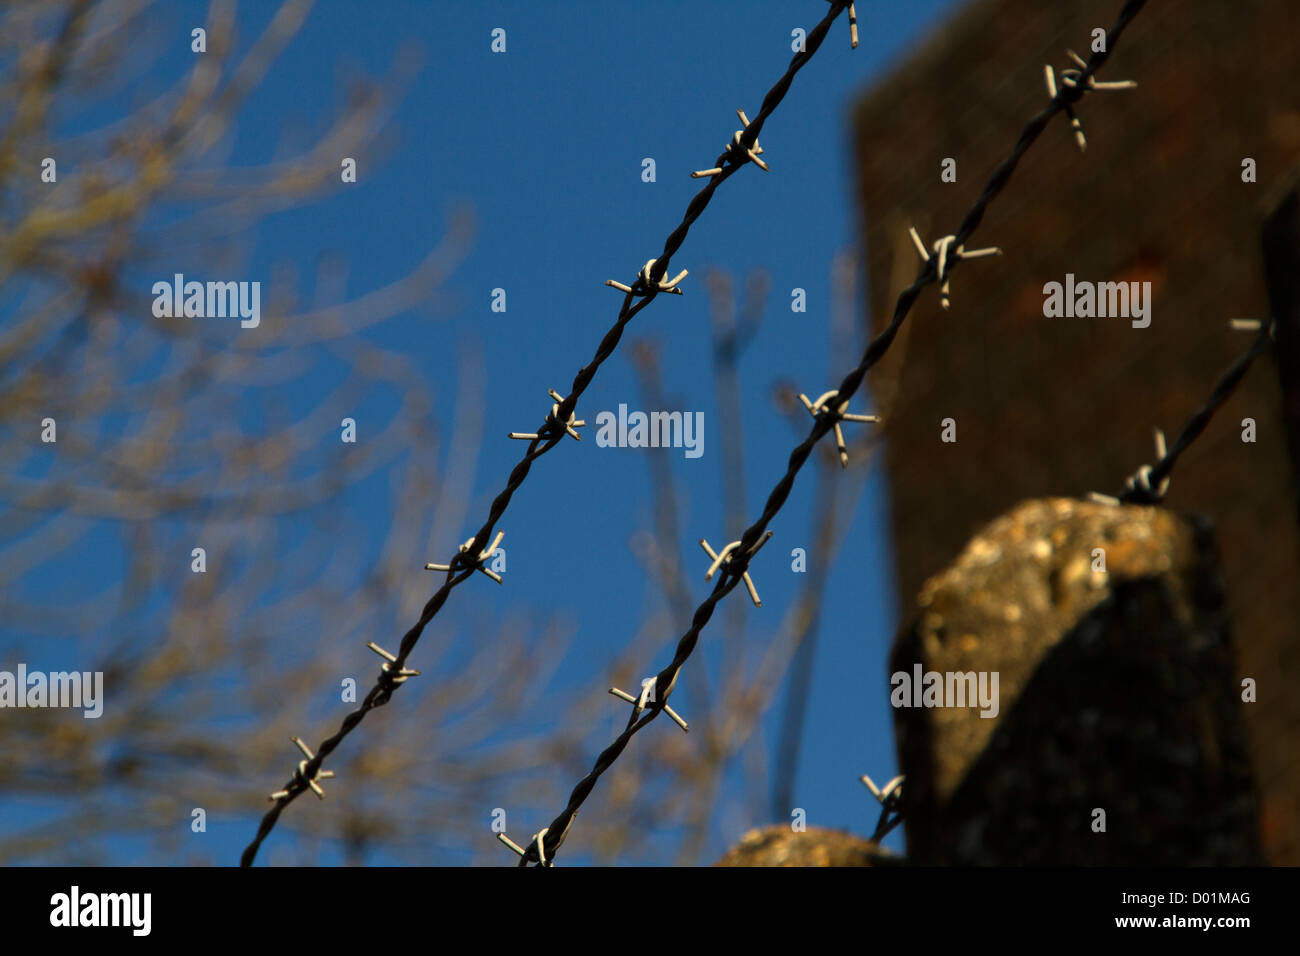 barbed wire against clear blue sky - Stock Image